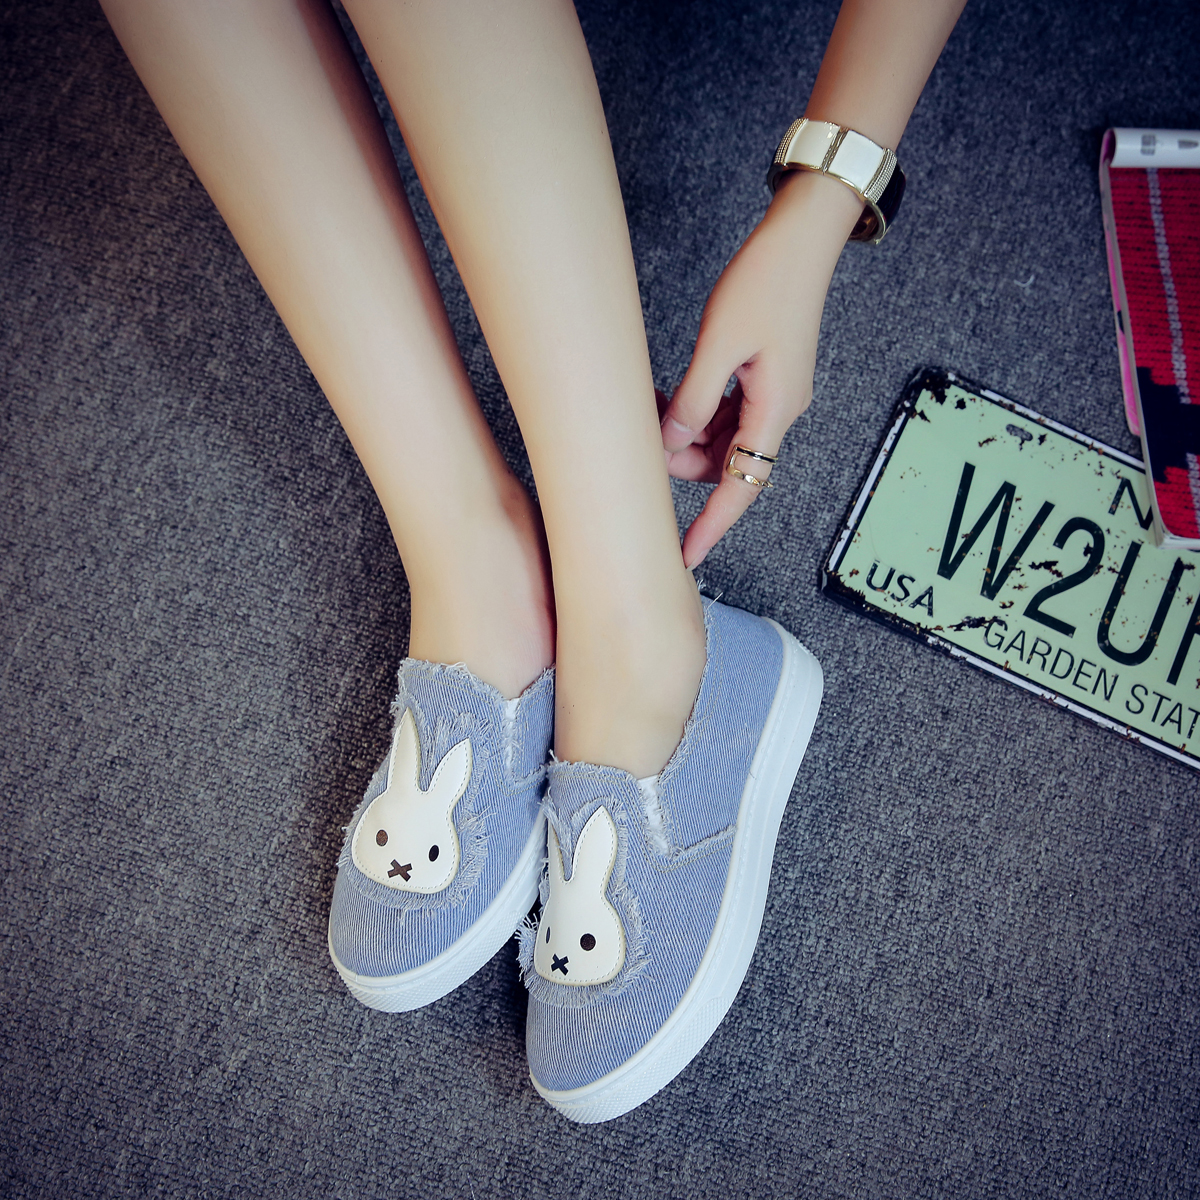 High Quality Women's Jeans Shoes flats Fashion Casual Rabbit Shoes Soft Soles Students Canvas Shoes Breathable Shoe New vintage embroidery women flats chinese floral canvas embroidered shoes national old beijing cloth single dance soft flats